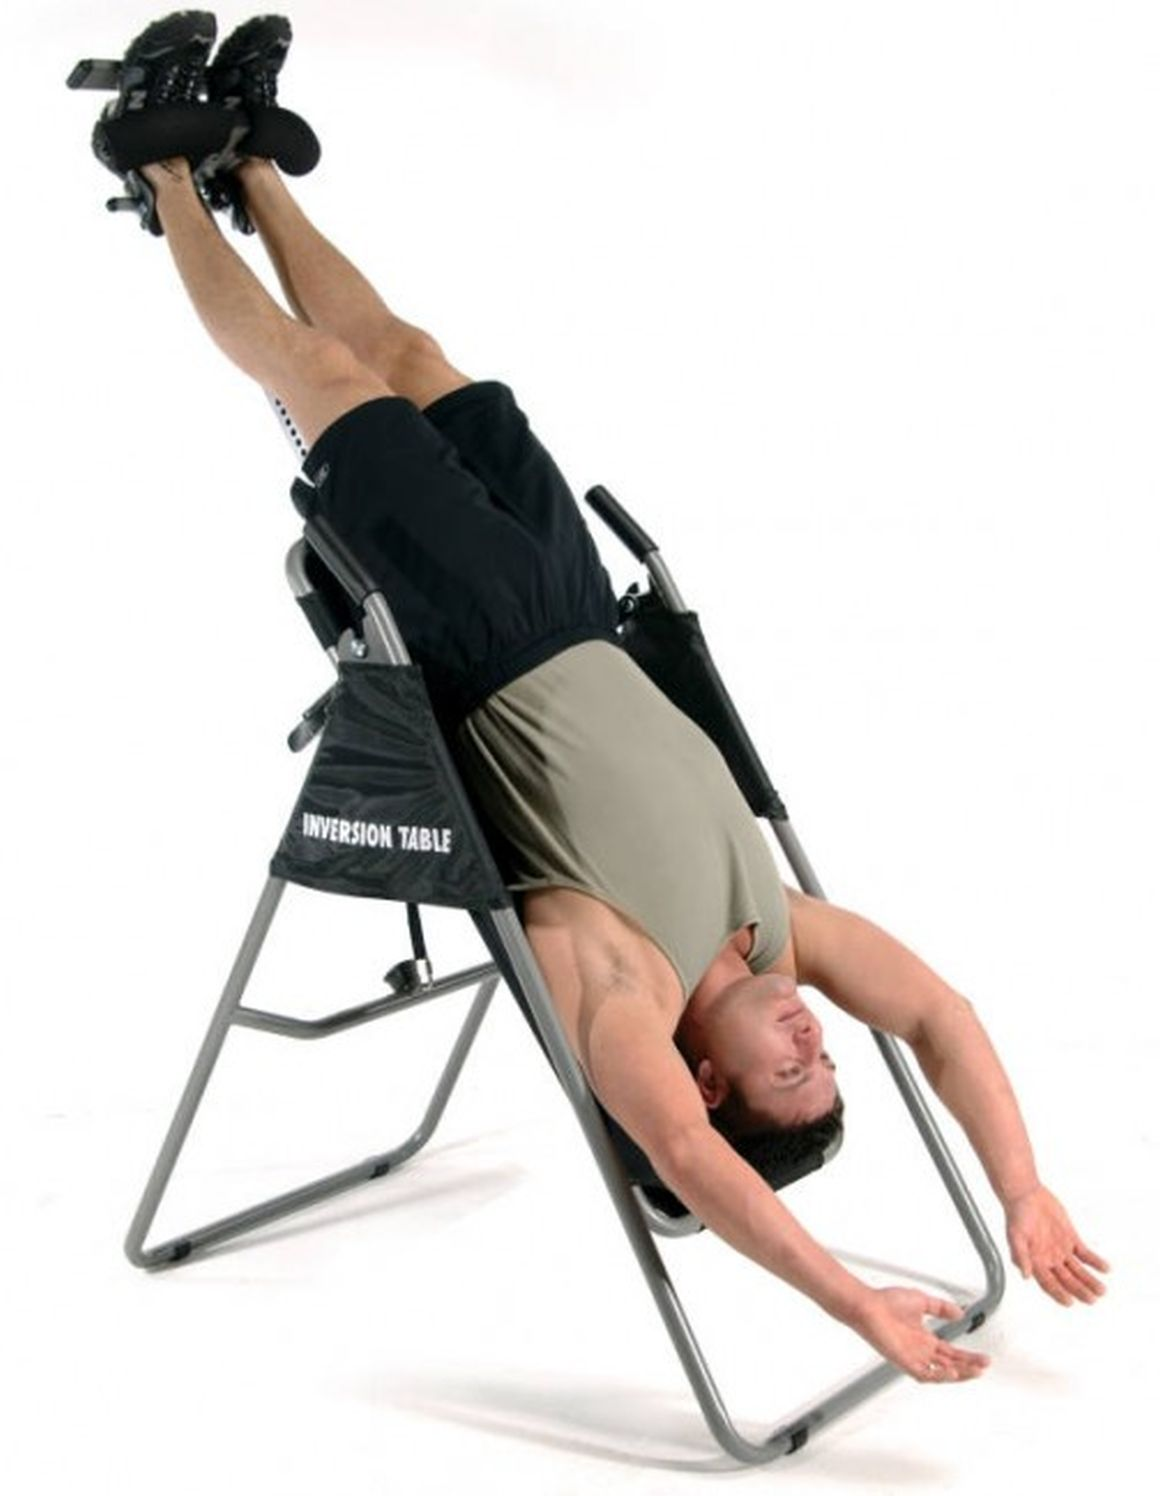 upside down chair for back pain the silver summary benefits of inversion table cabinets matttroy